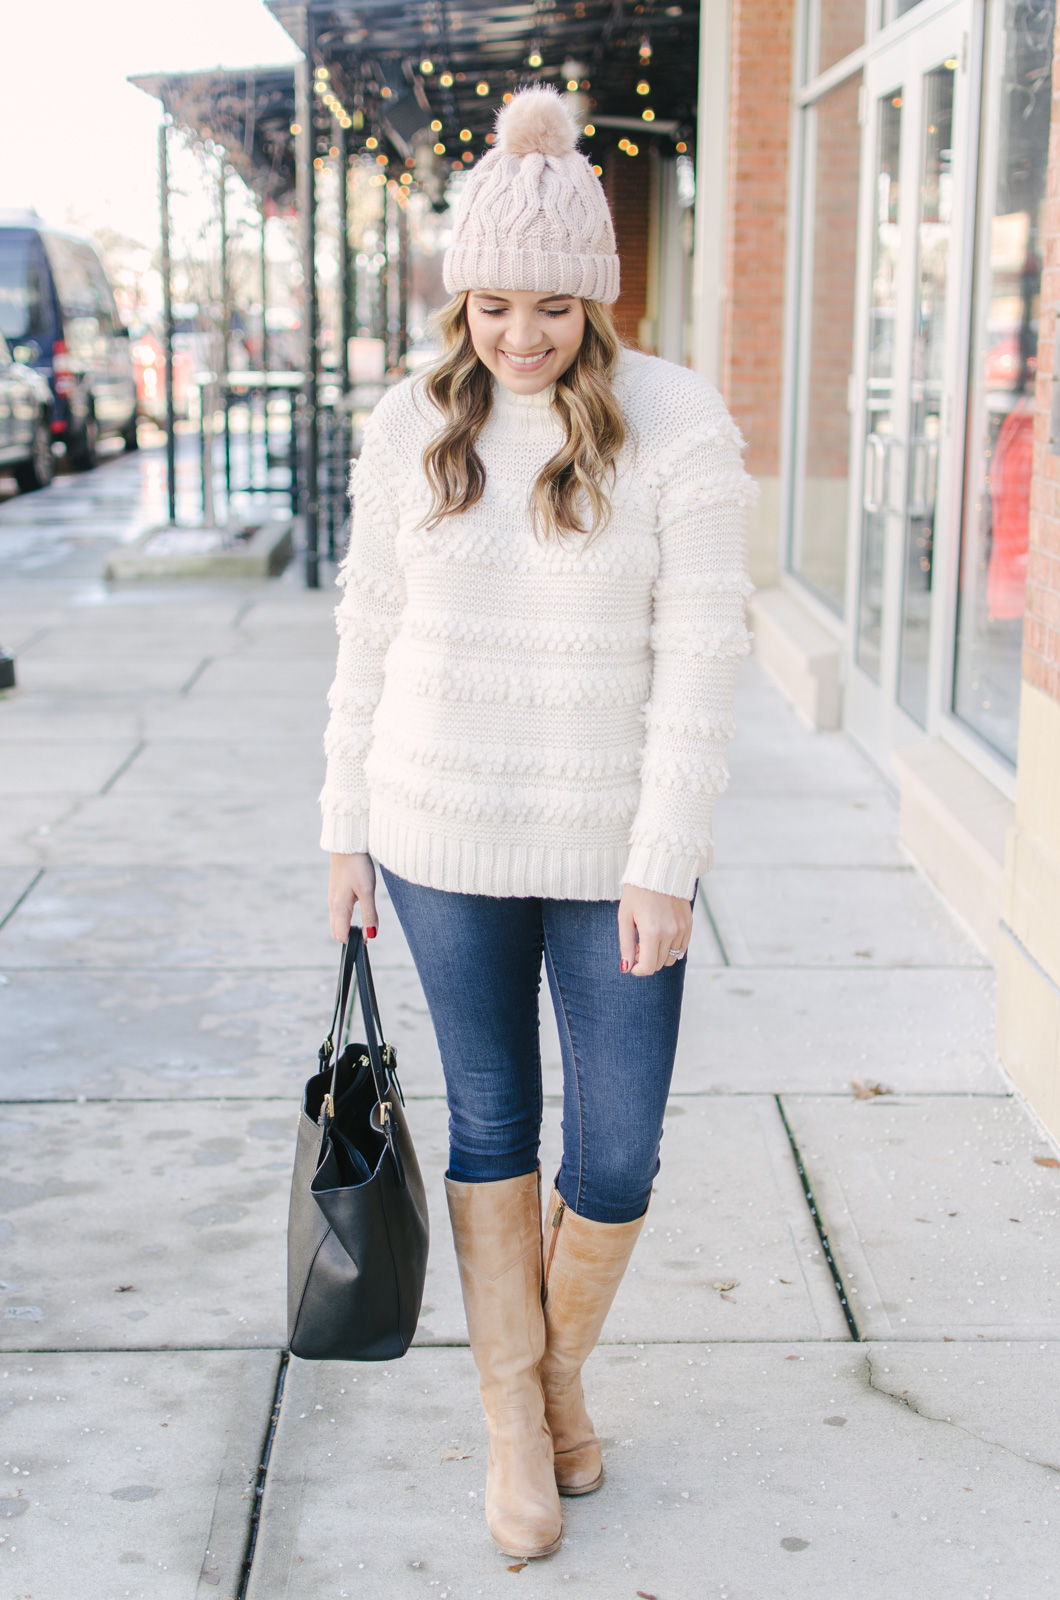 cream oversized sweater and a beanie outfit - I am obsessed with this textured sweater! | Get all the outfit details and see more cute Winter outfits at bylaurenm.com!